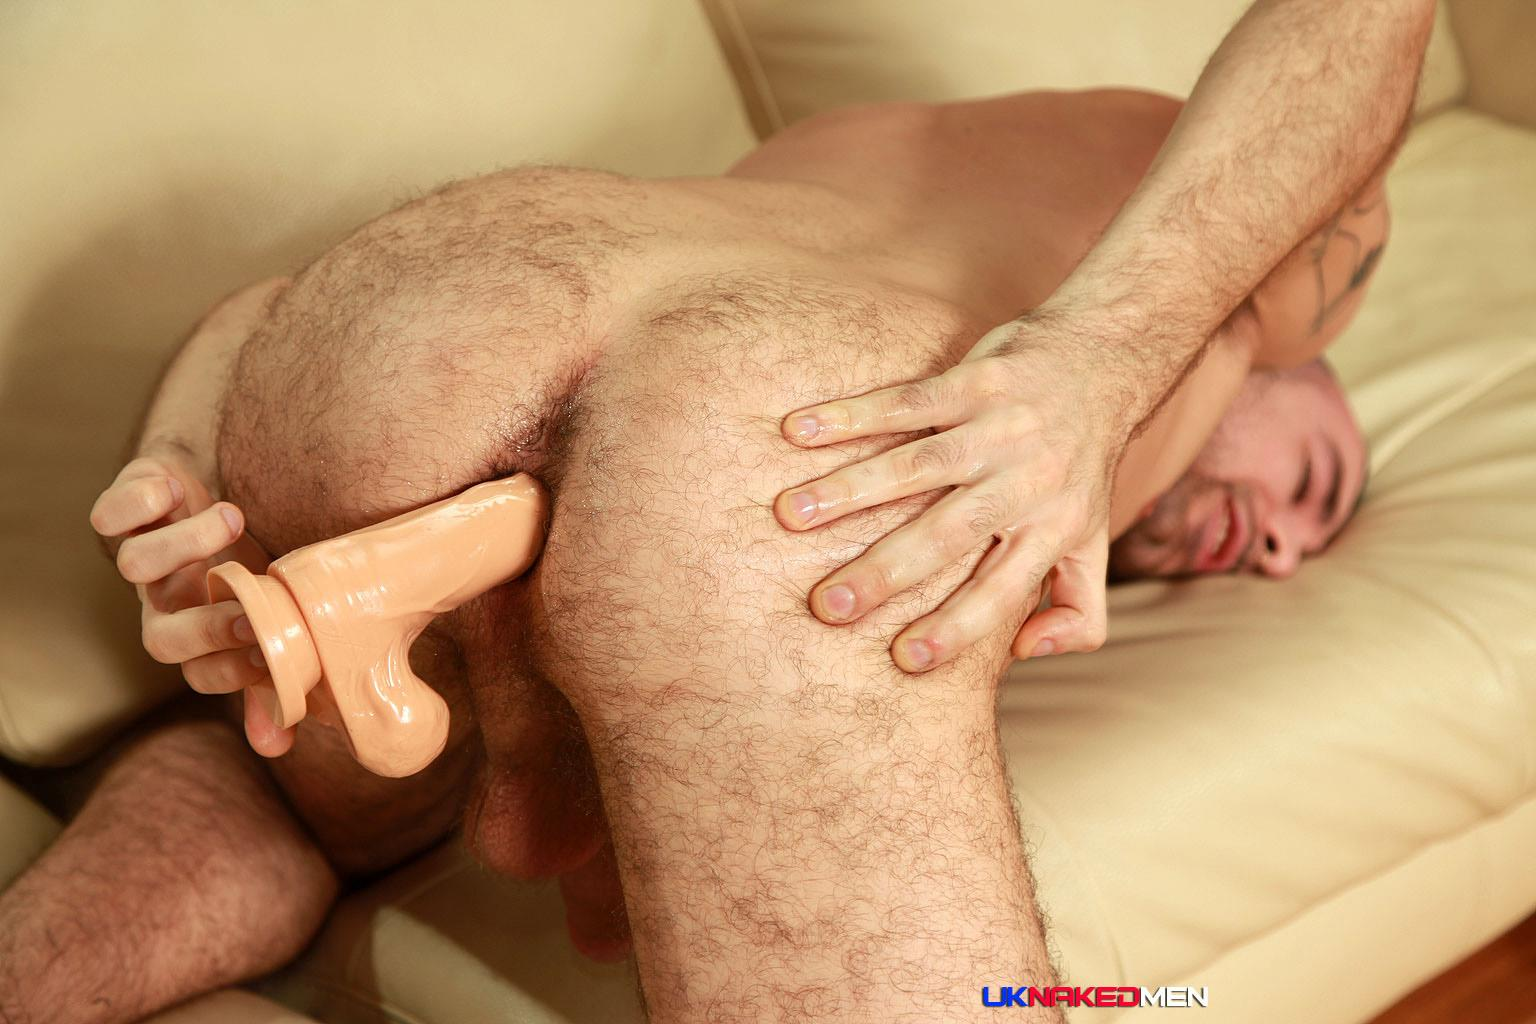 UK Naked Men Sam Syron Irish Guy With A Big Uncut Cock Jerk Off Amateur Gay Porn 16 Irish Guy With A Big Uncut Cock Sticks A Dildo In His Hairy Ass